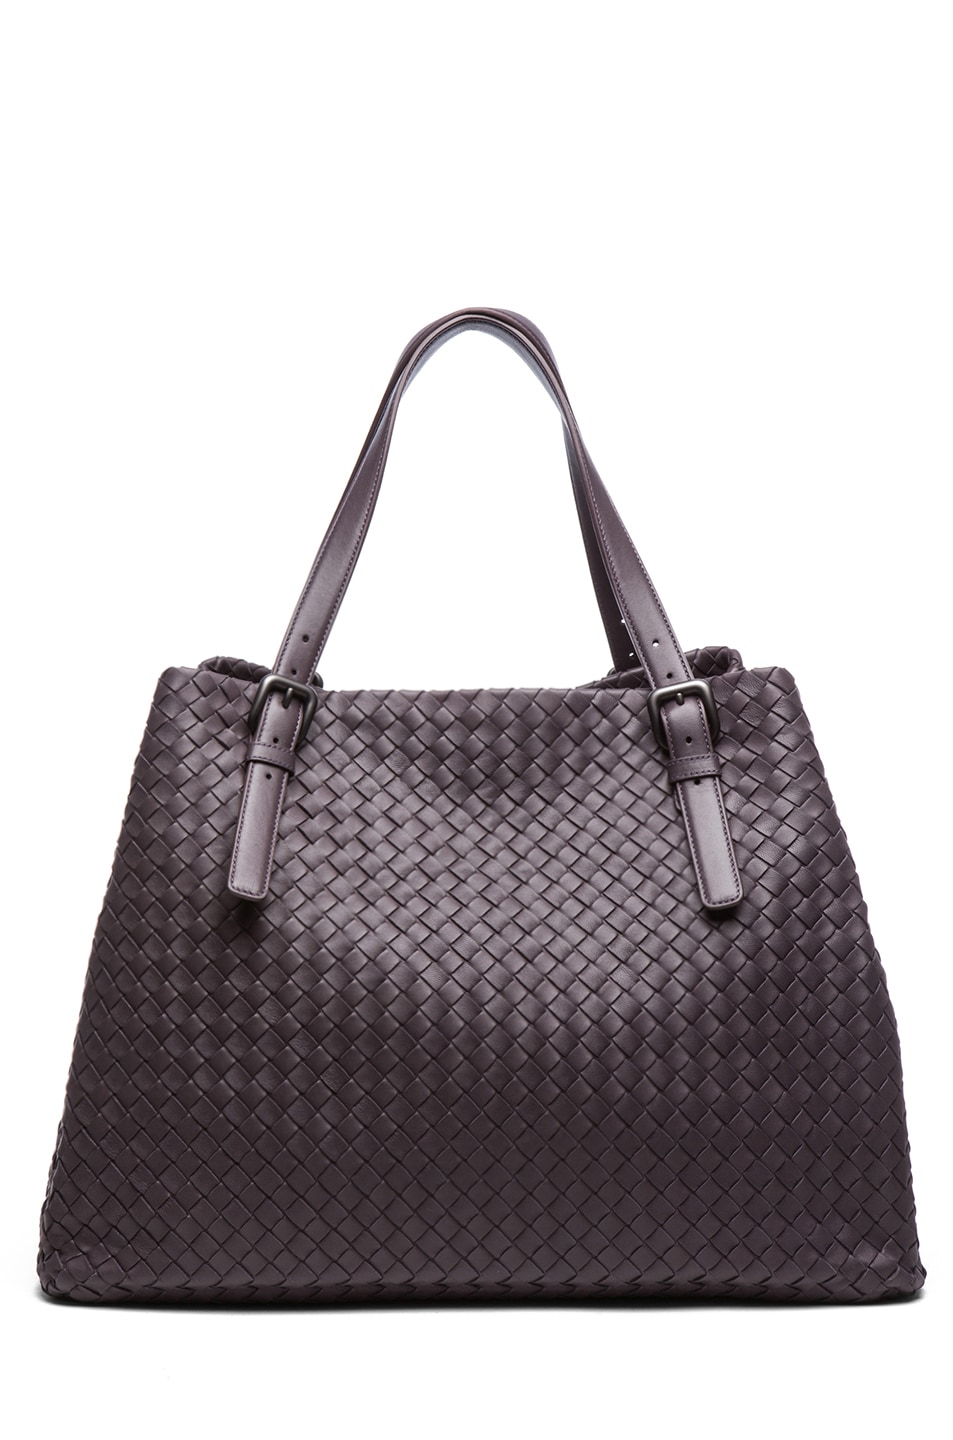 Image 1 of Bottega Veneta Large Tote Bag in Purple